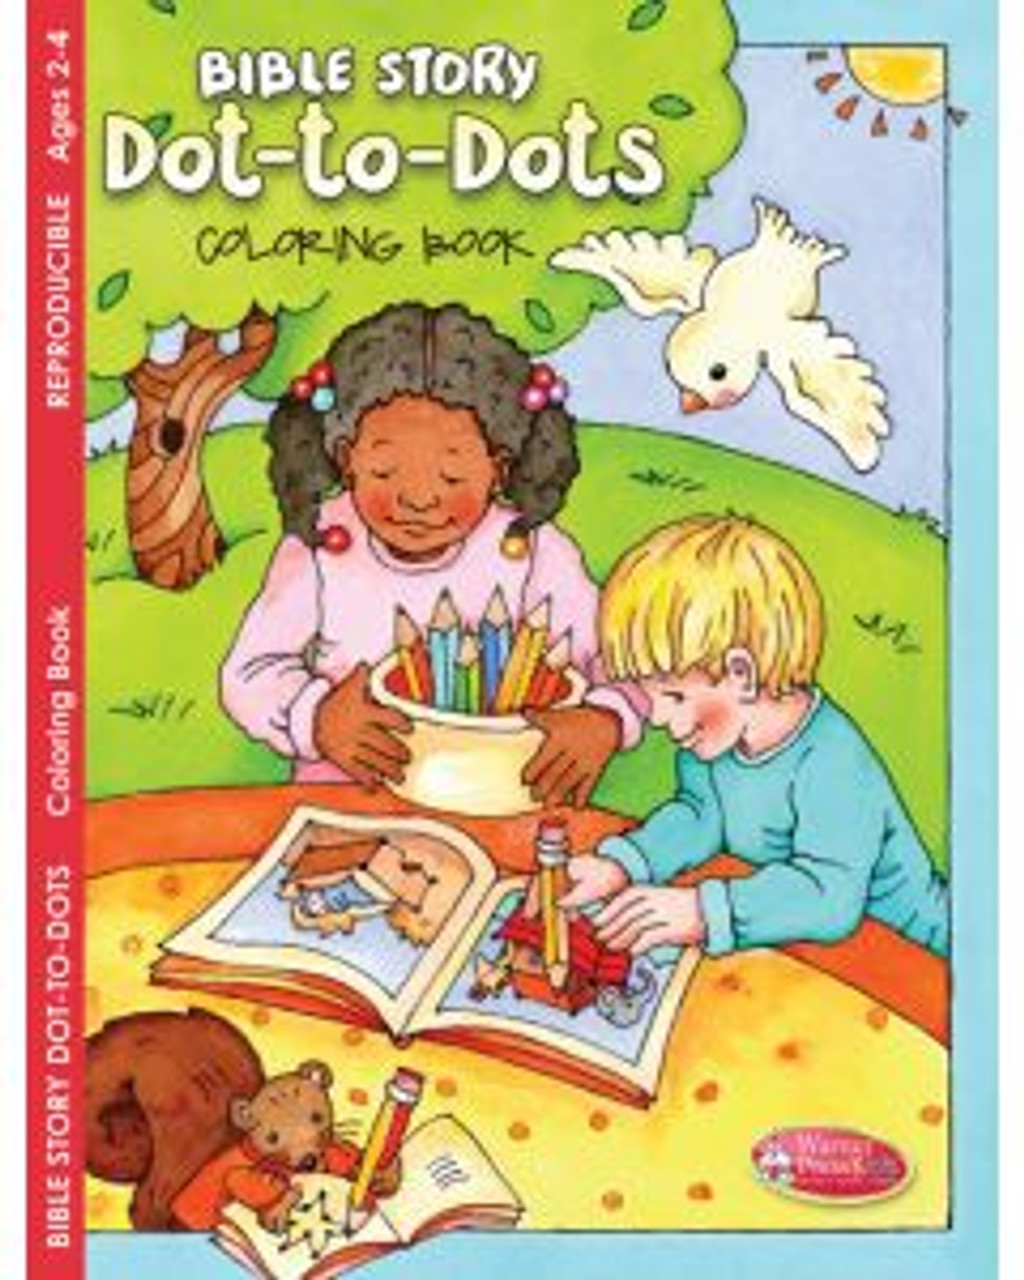 Bible Story Dot-to-Dots (coloring book)